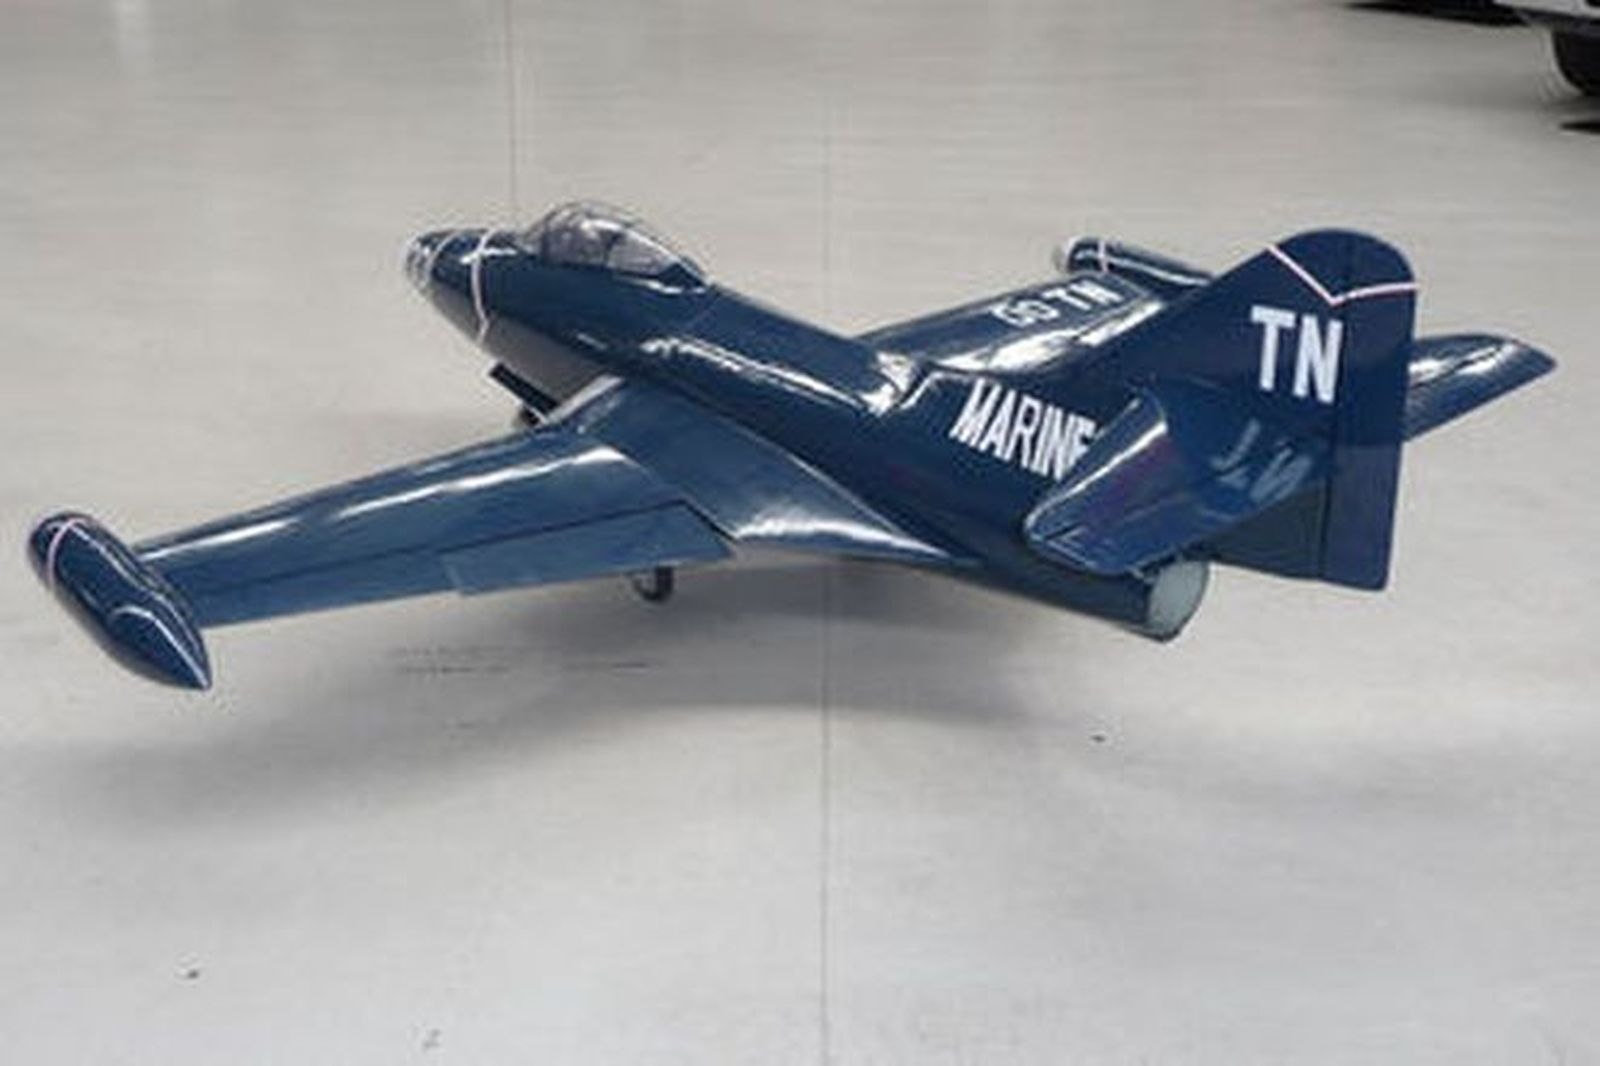 sold  model plane - f9f panther jet scale ww2 aircraft